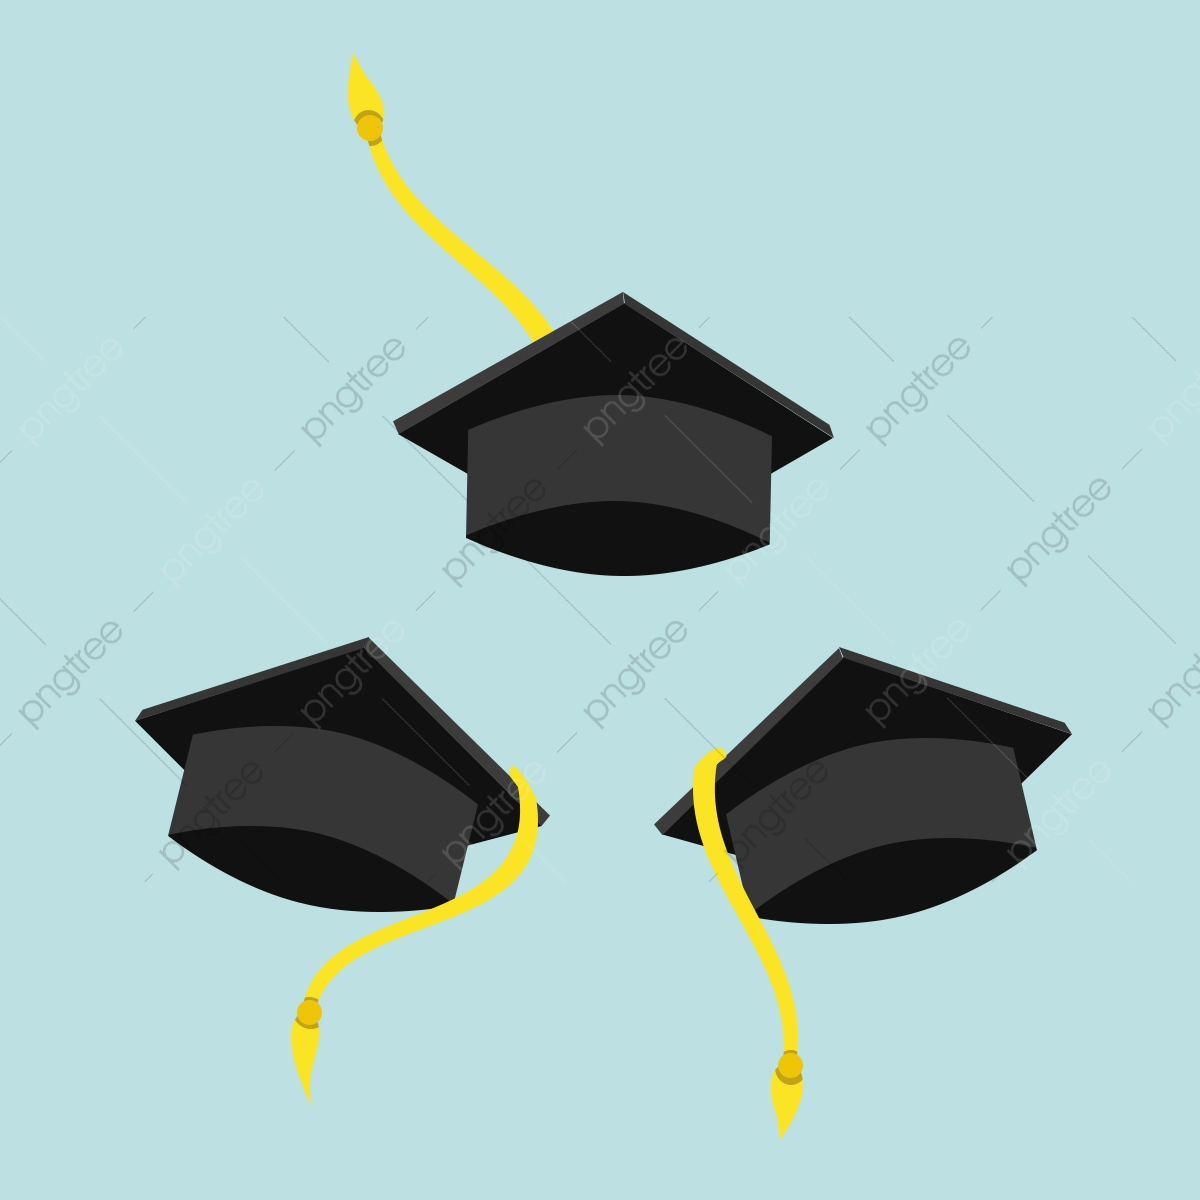 3 Sets Graduation Hats With Different Style And Angle.